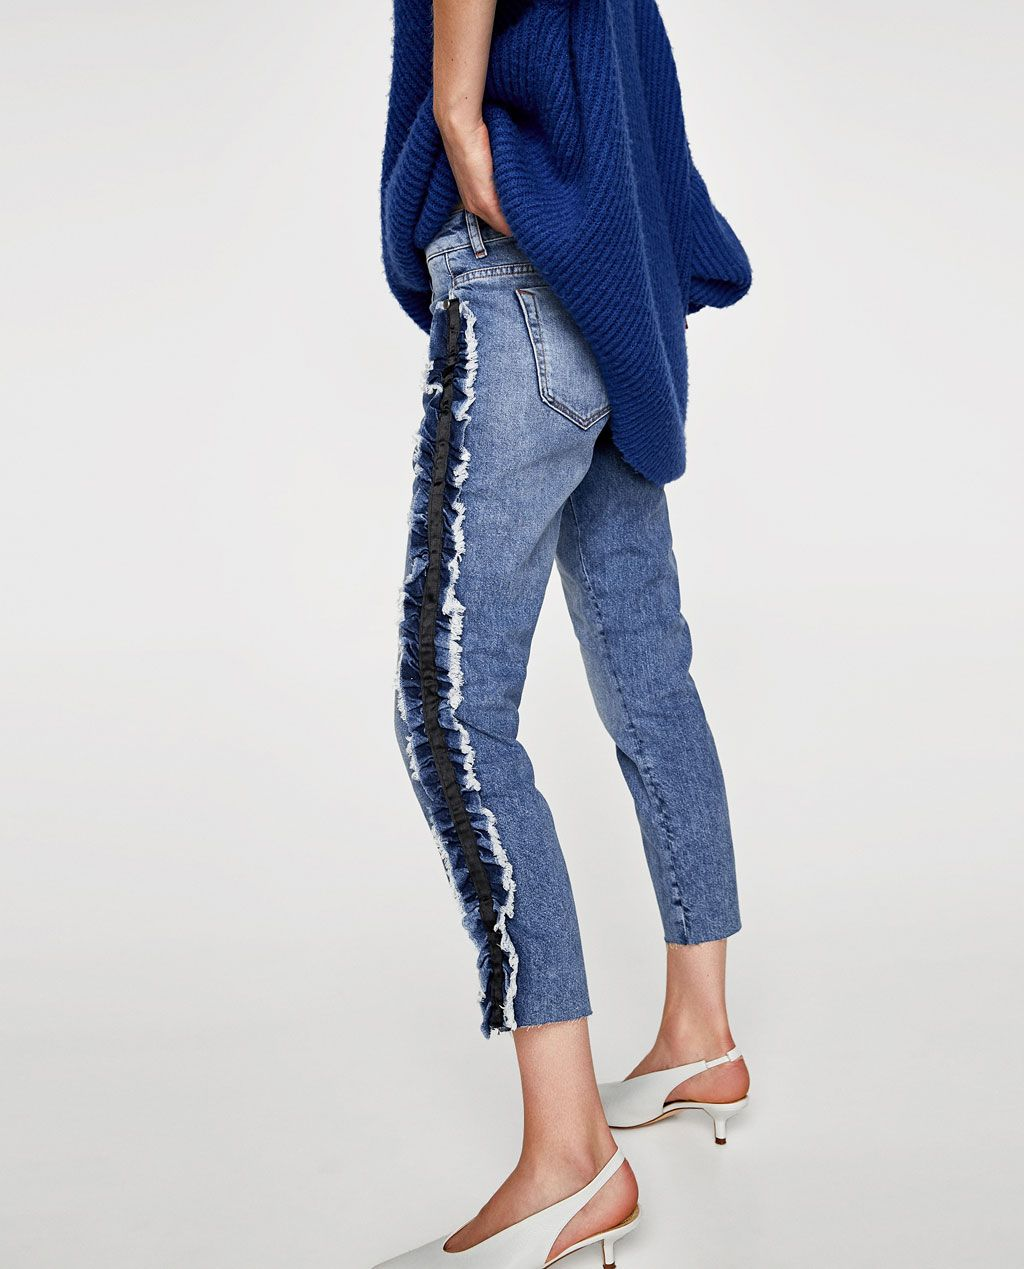 9e74f9329c1c5b JEANS WITH SIDE FRILL-Skinny-JEANS-WOMAN | ZARA United States ...